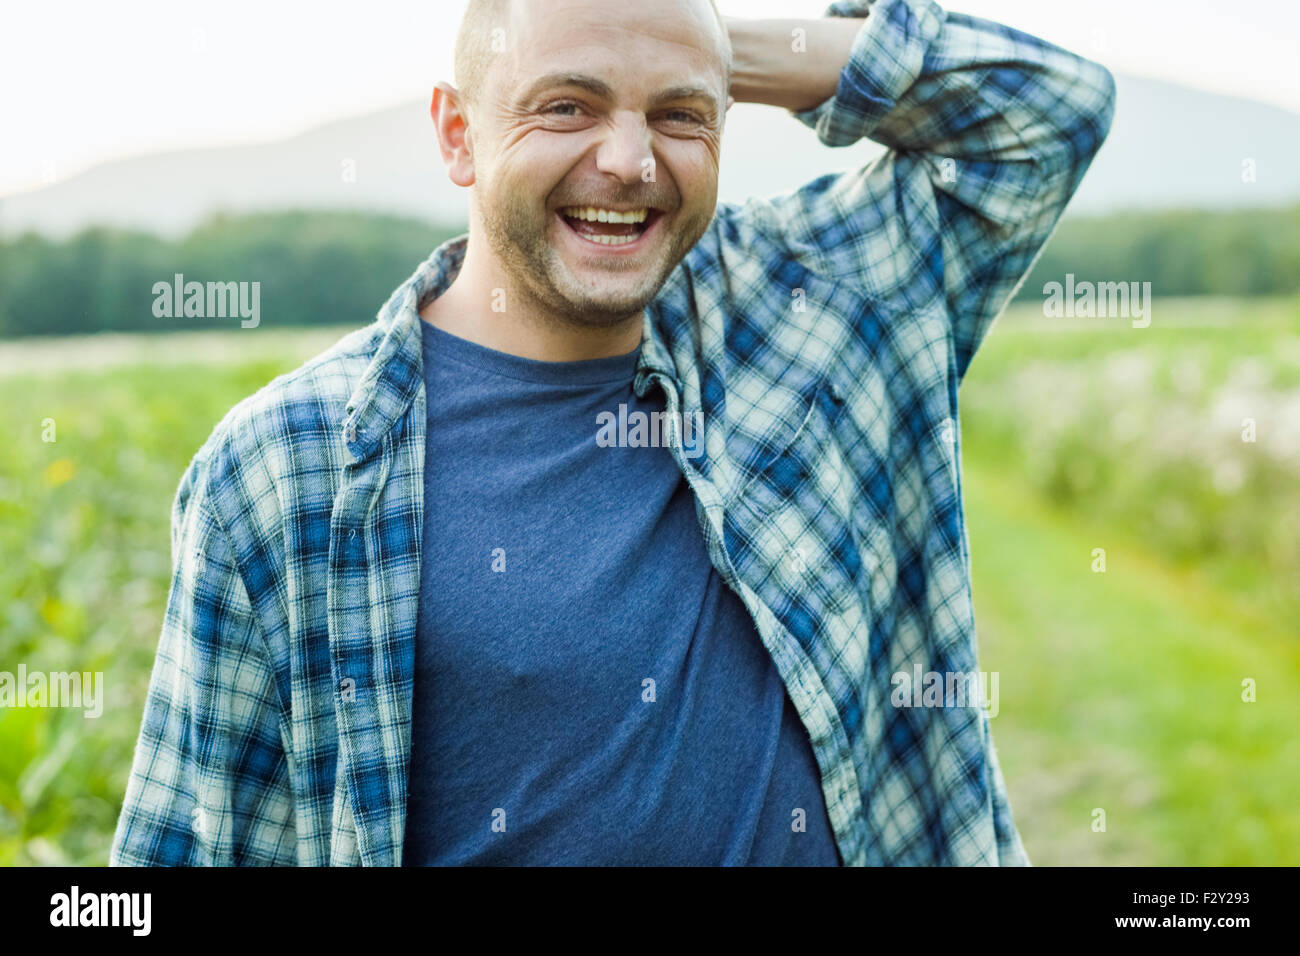 A man outdoors in a wild flower meadow wearing a checked shirt. - Stock Image